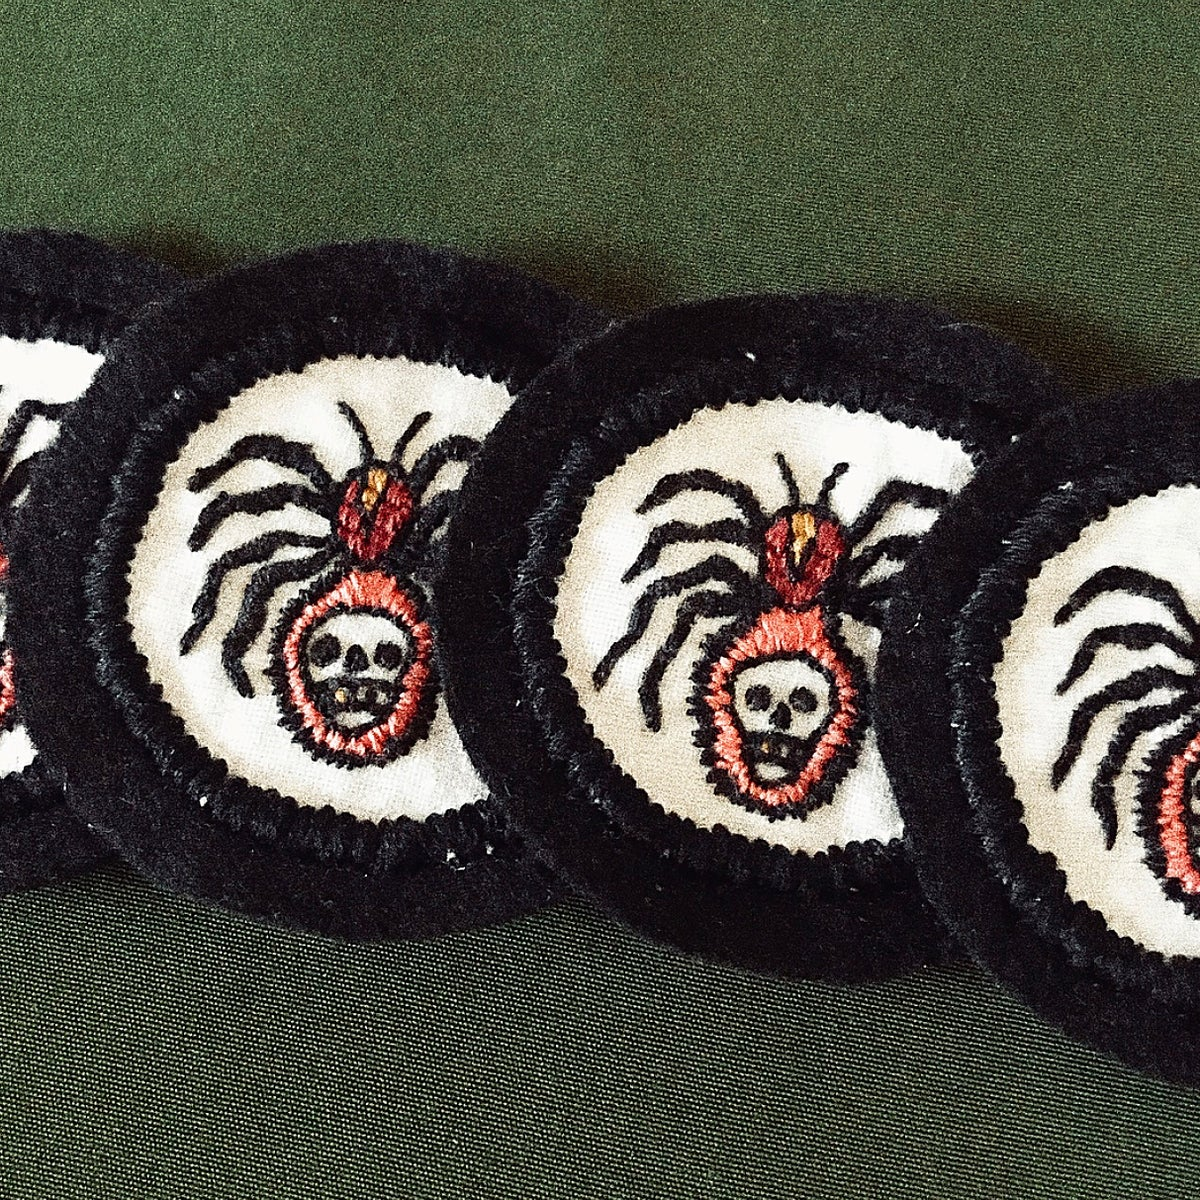 Image of HAND EMBROIDERED SPIDER PATCH.